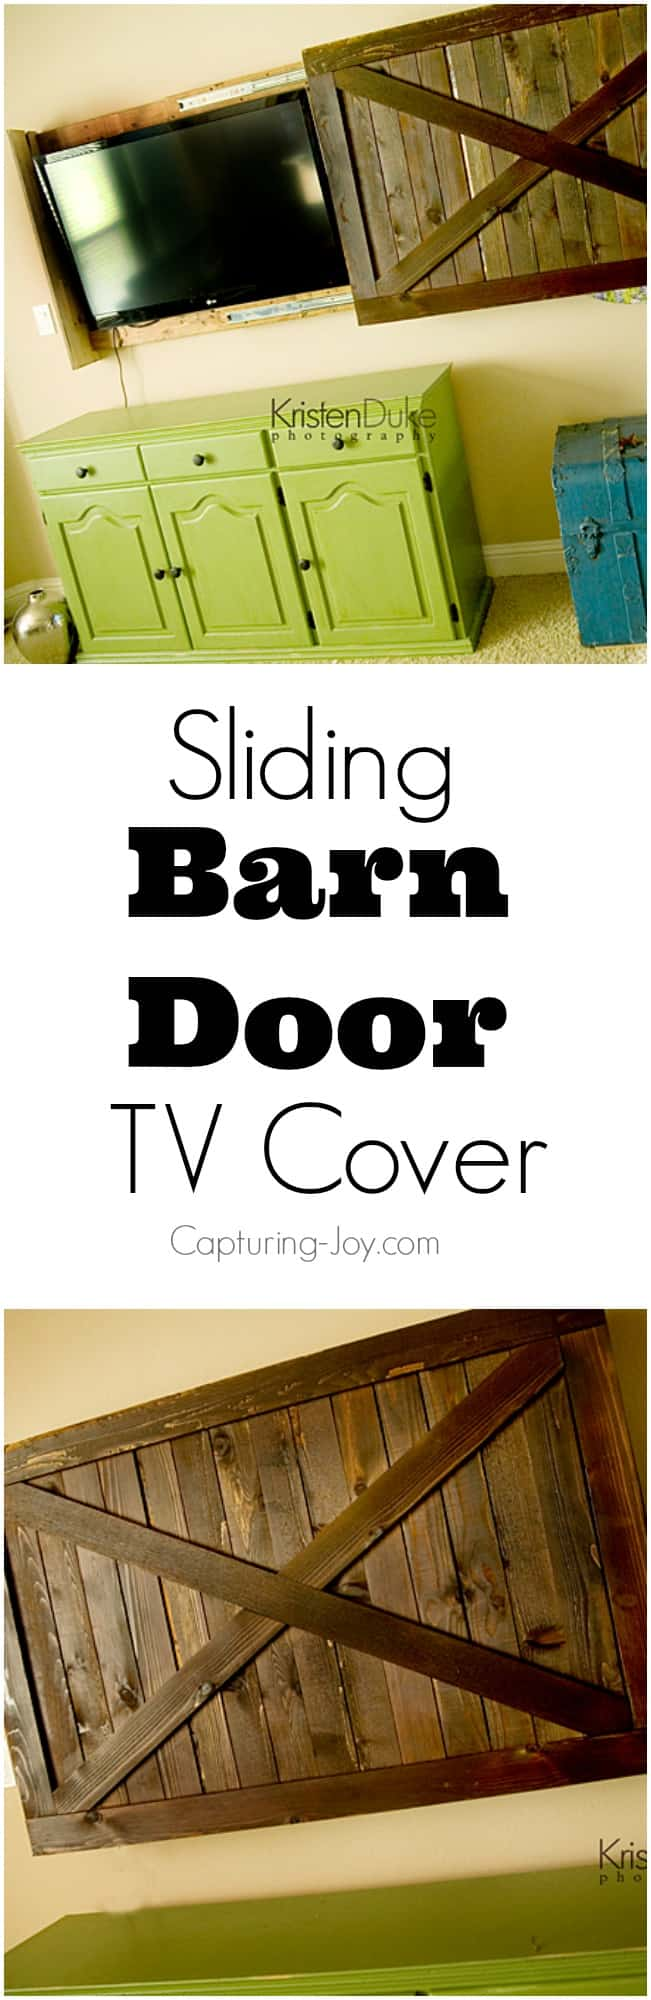 Sliding barn door style TV cover